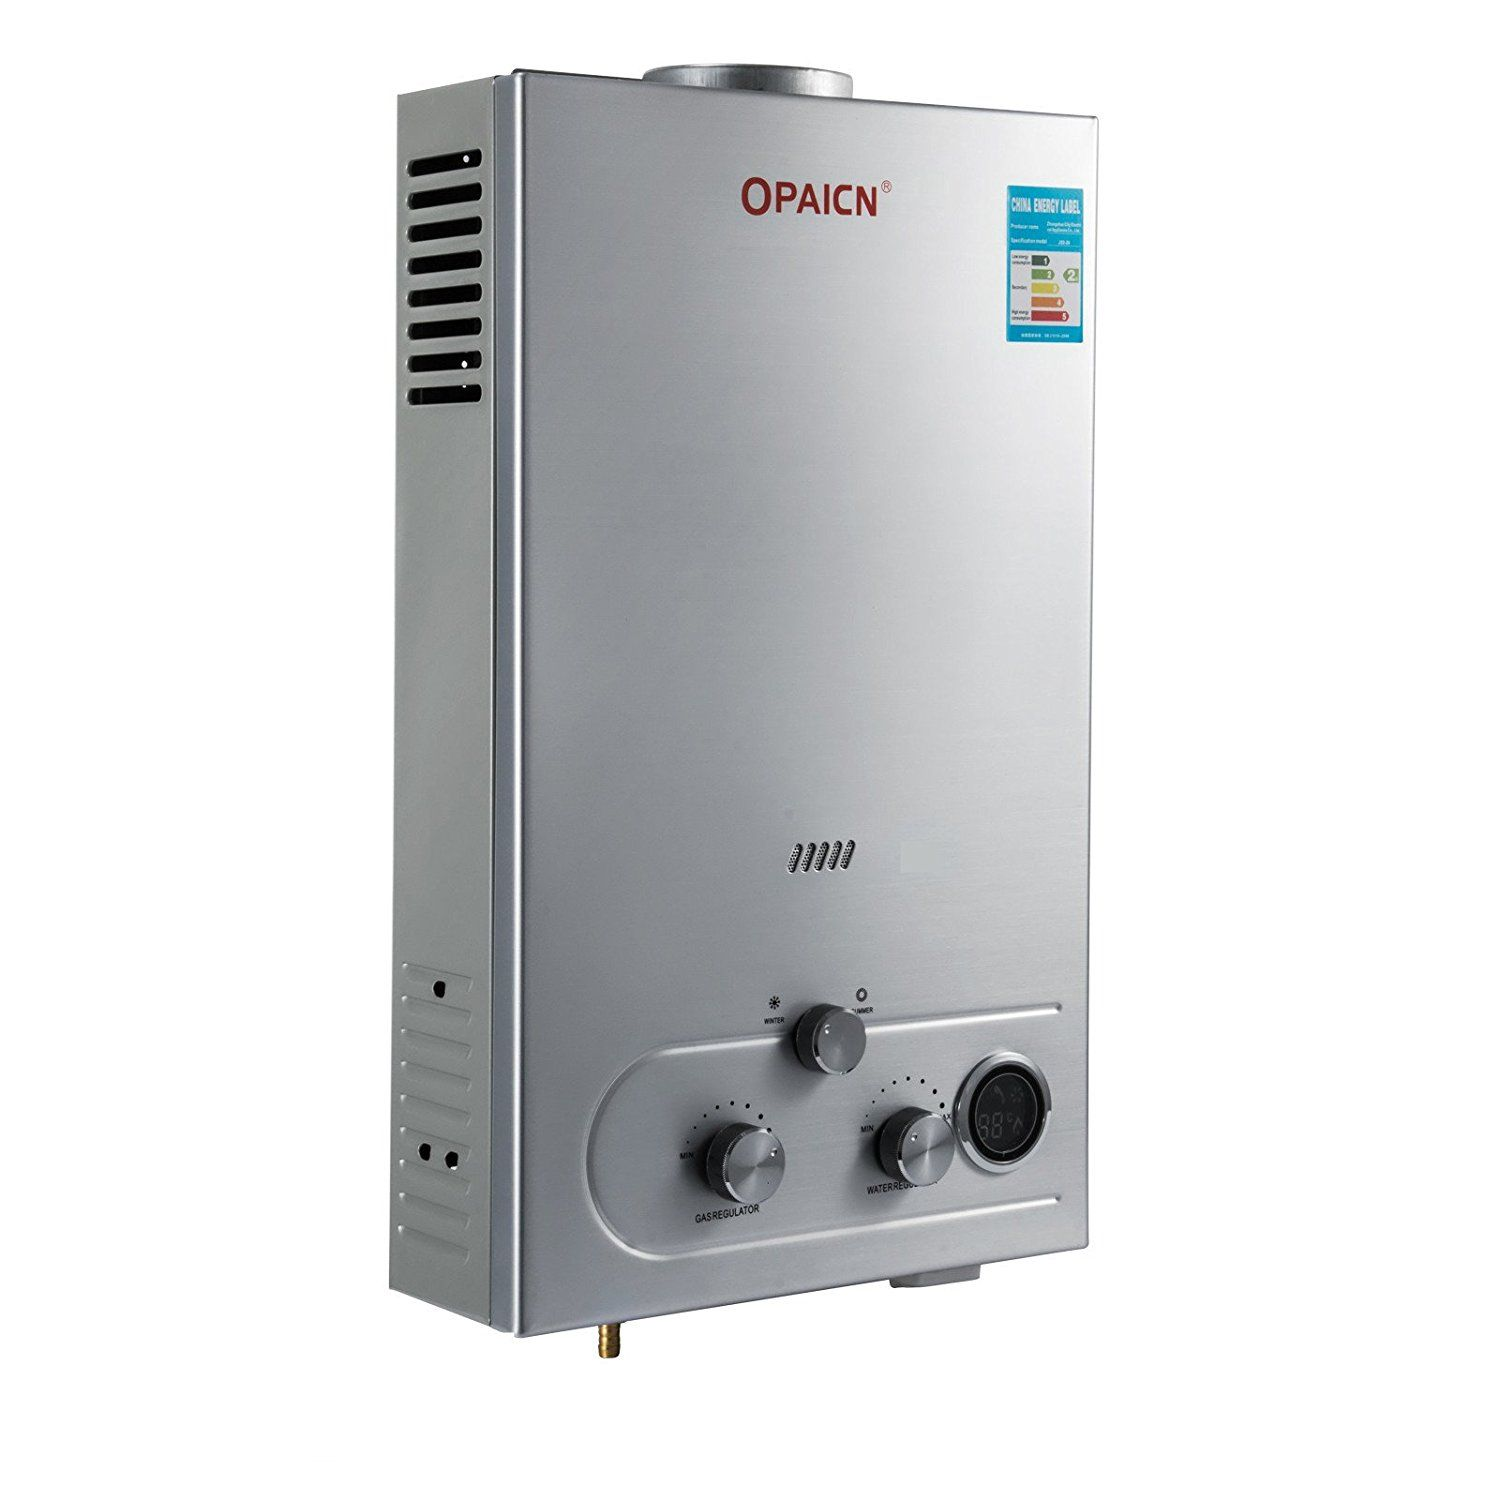 5 Best Gas Tankless Water Heater Plus 2 To Avoid 2020 Buyers Guide Tankless Water Heater Gas Natural Gas Water Heater Gas Water Heater